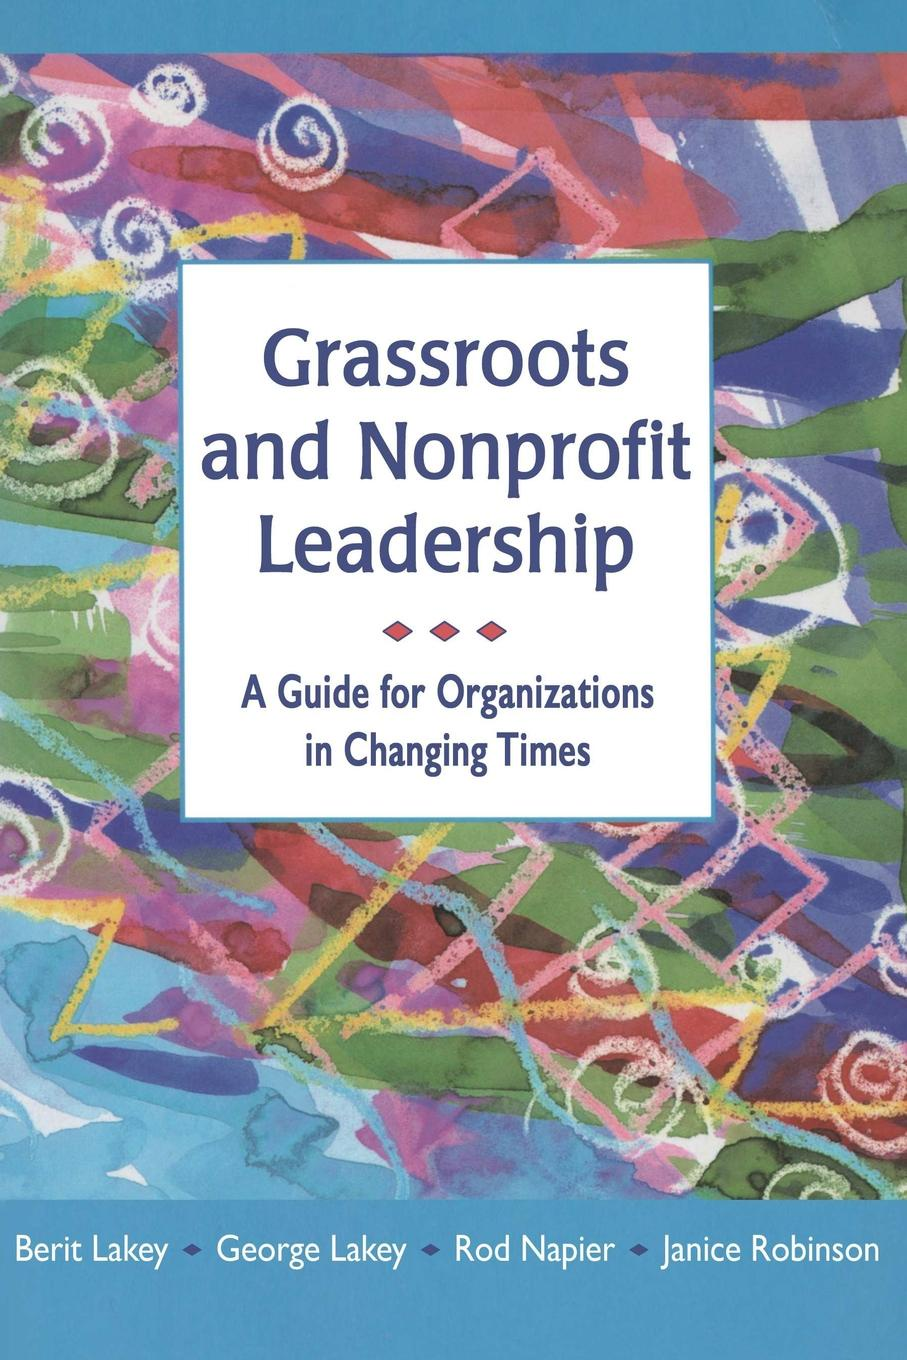 Berit Lakey, George Lakey, Rod Napier Grassroots and Nonprofit Leadership. A Guide for Organizations in Changing Times antoinette oglethorpe grow your geeks a handbook for developing leaders in high tech organisations